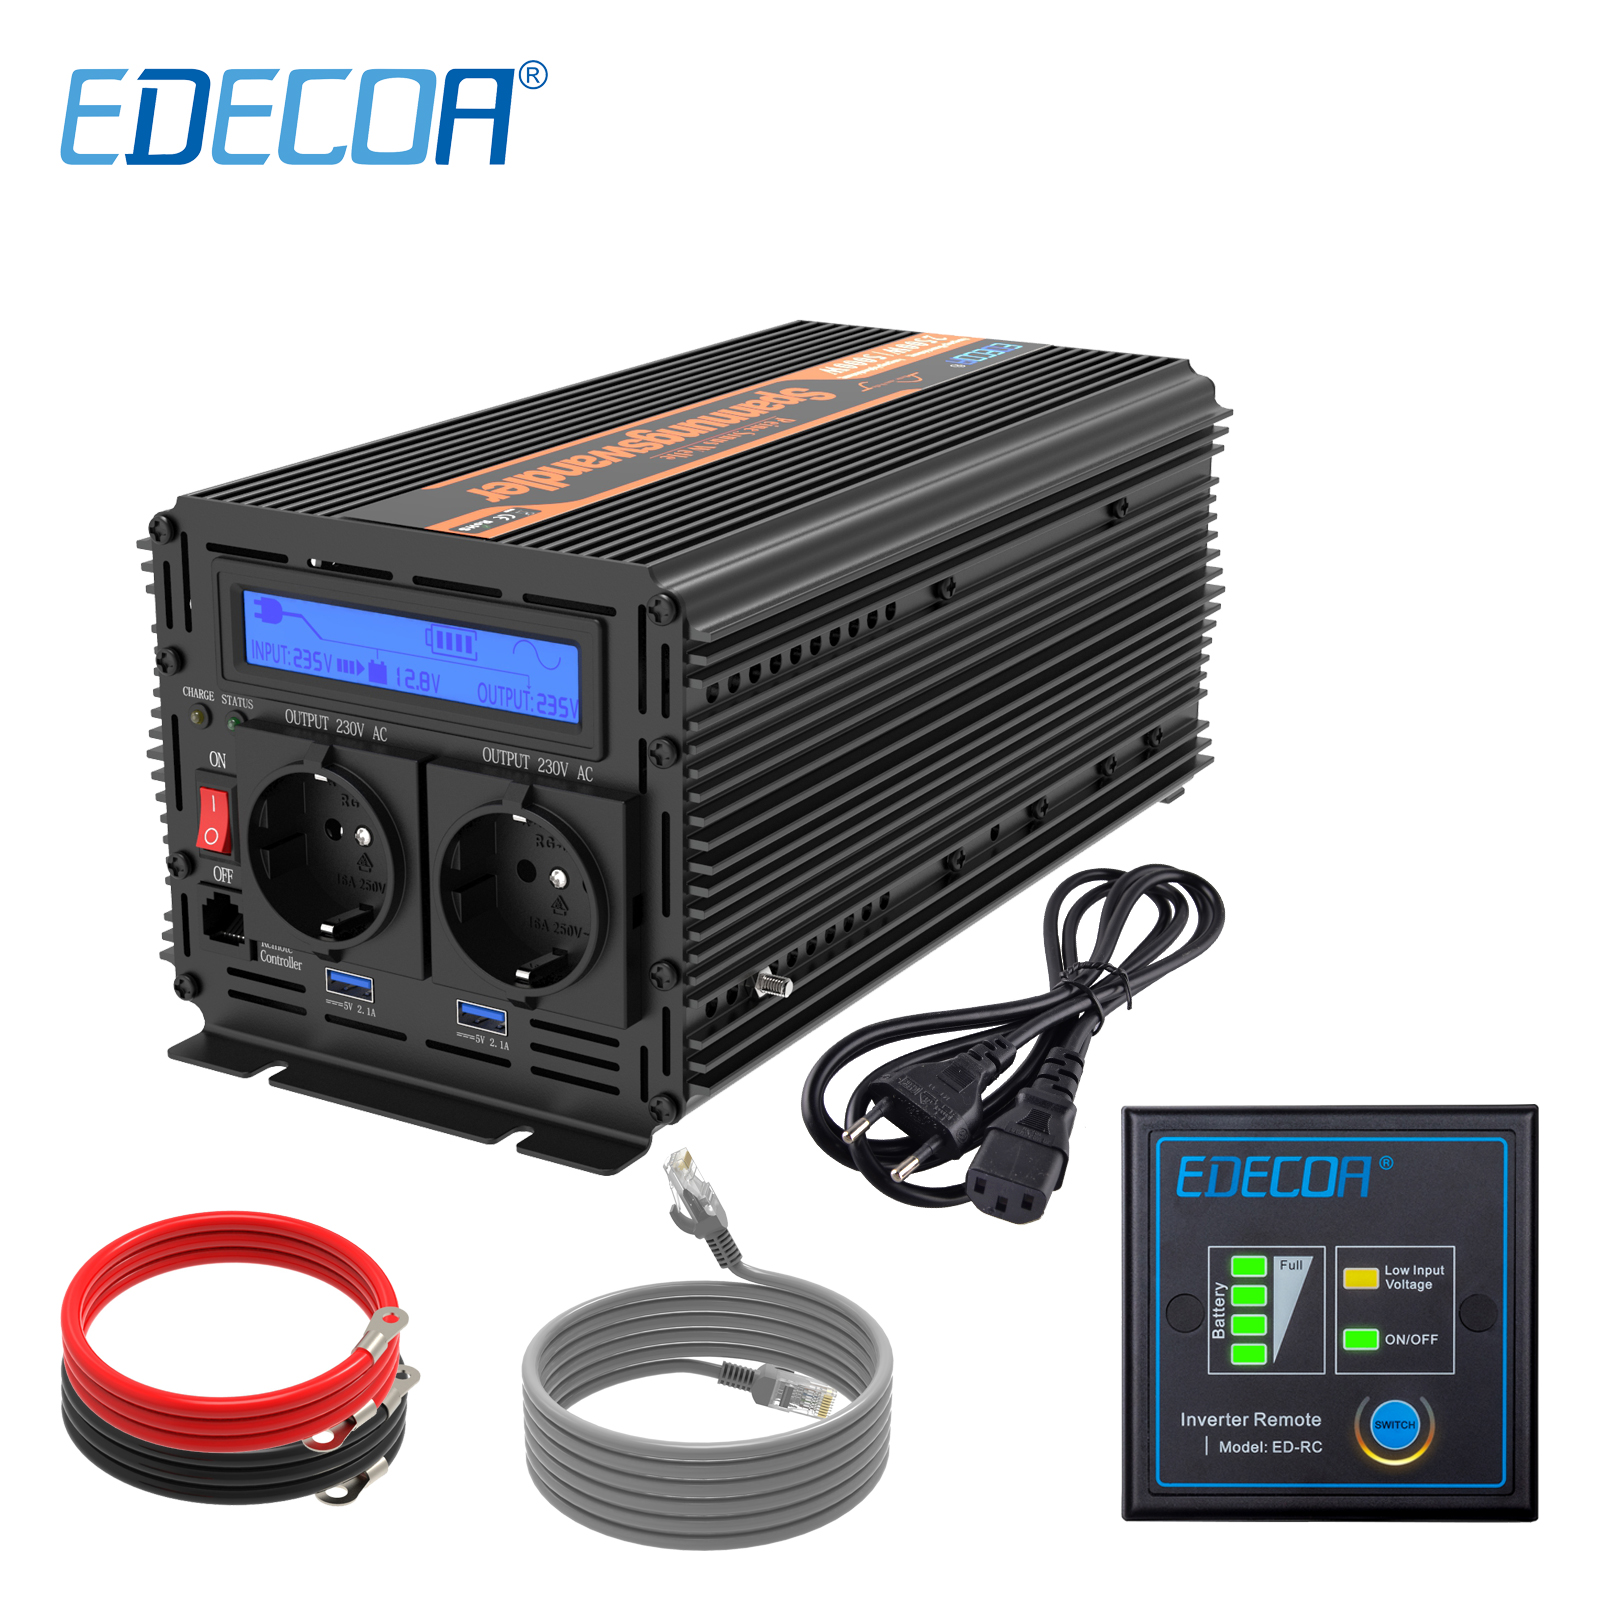 EDECOA UPS ladegerät power inverter 1500W 3000W DC 12V AC 220V <font><b>230V</b></font> 240V reine sinus welle mit <font><b>USB</b></font> fernbedienung LCD display image